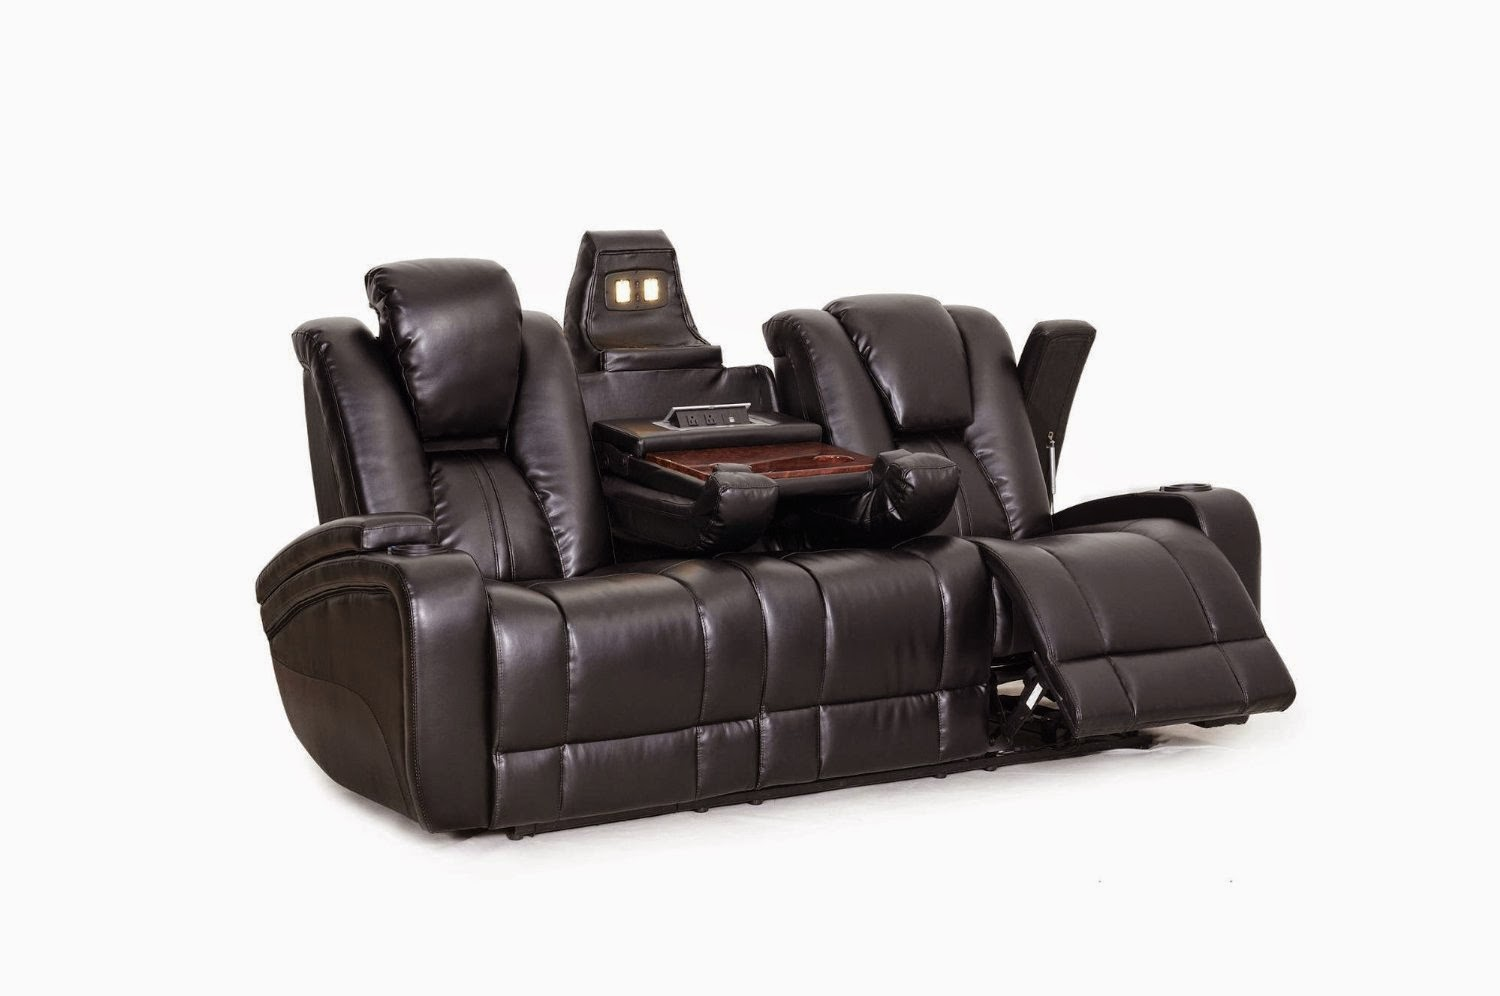 Top seller reclining and recliner sofa loveseat reclining sofa leather power Leather loveseat recliners